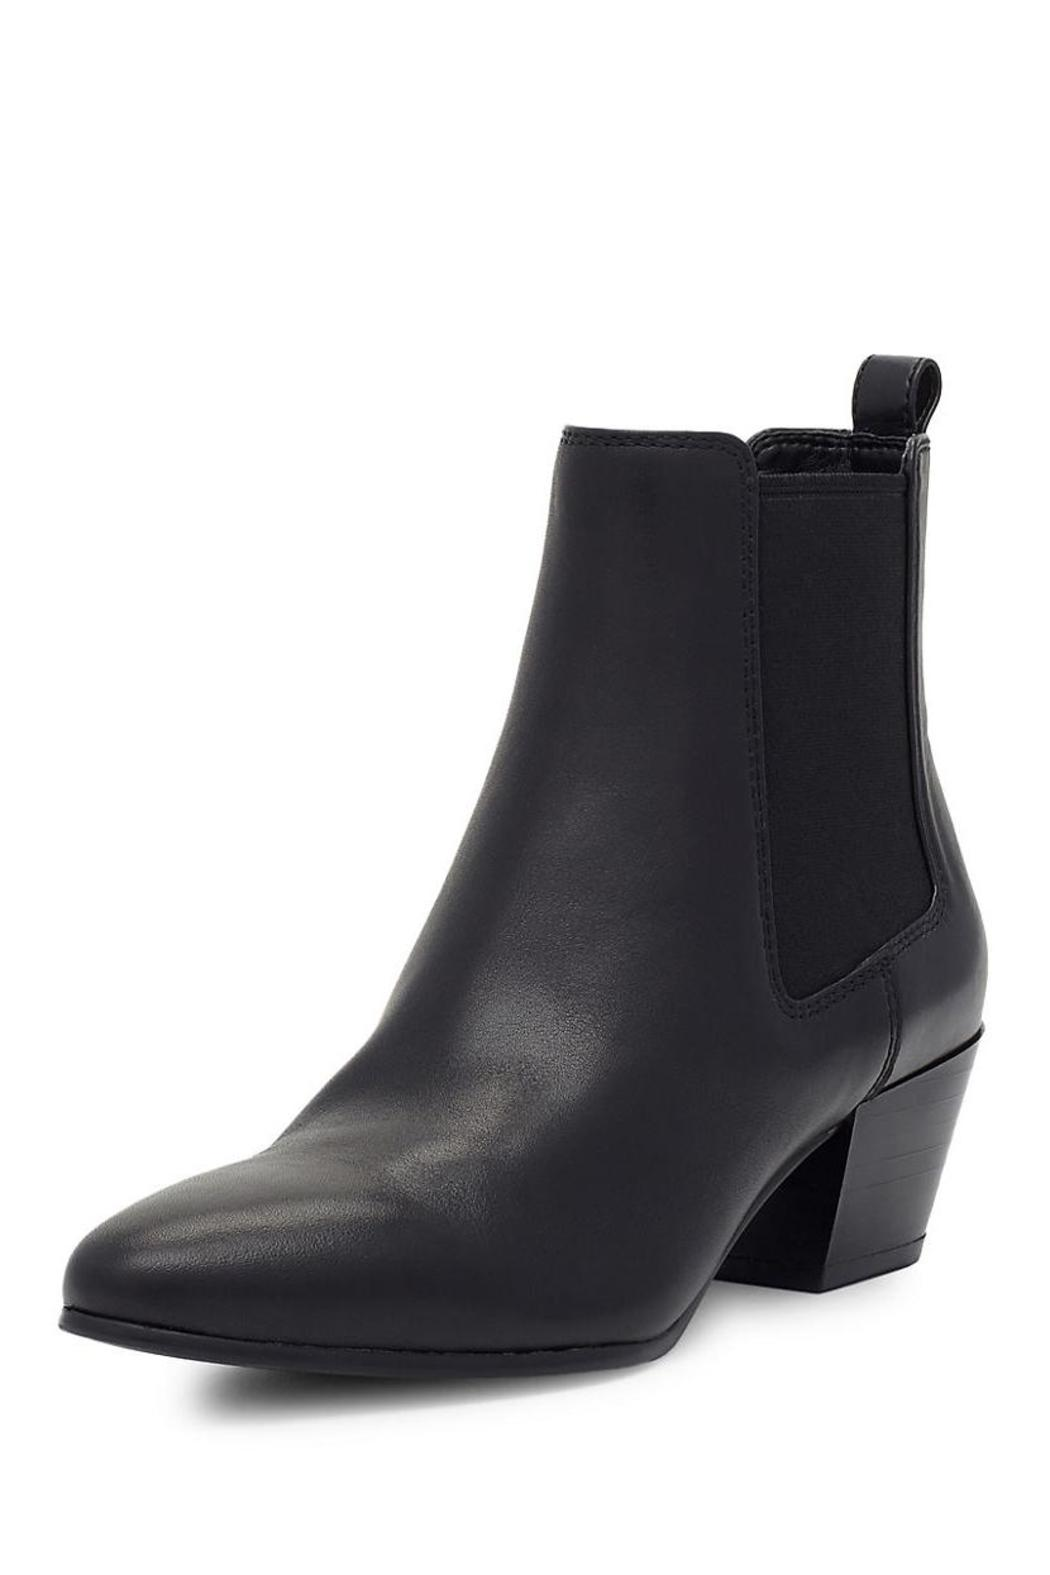 Sam Edelman Reesa Leather Bootie - Main Image